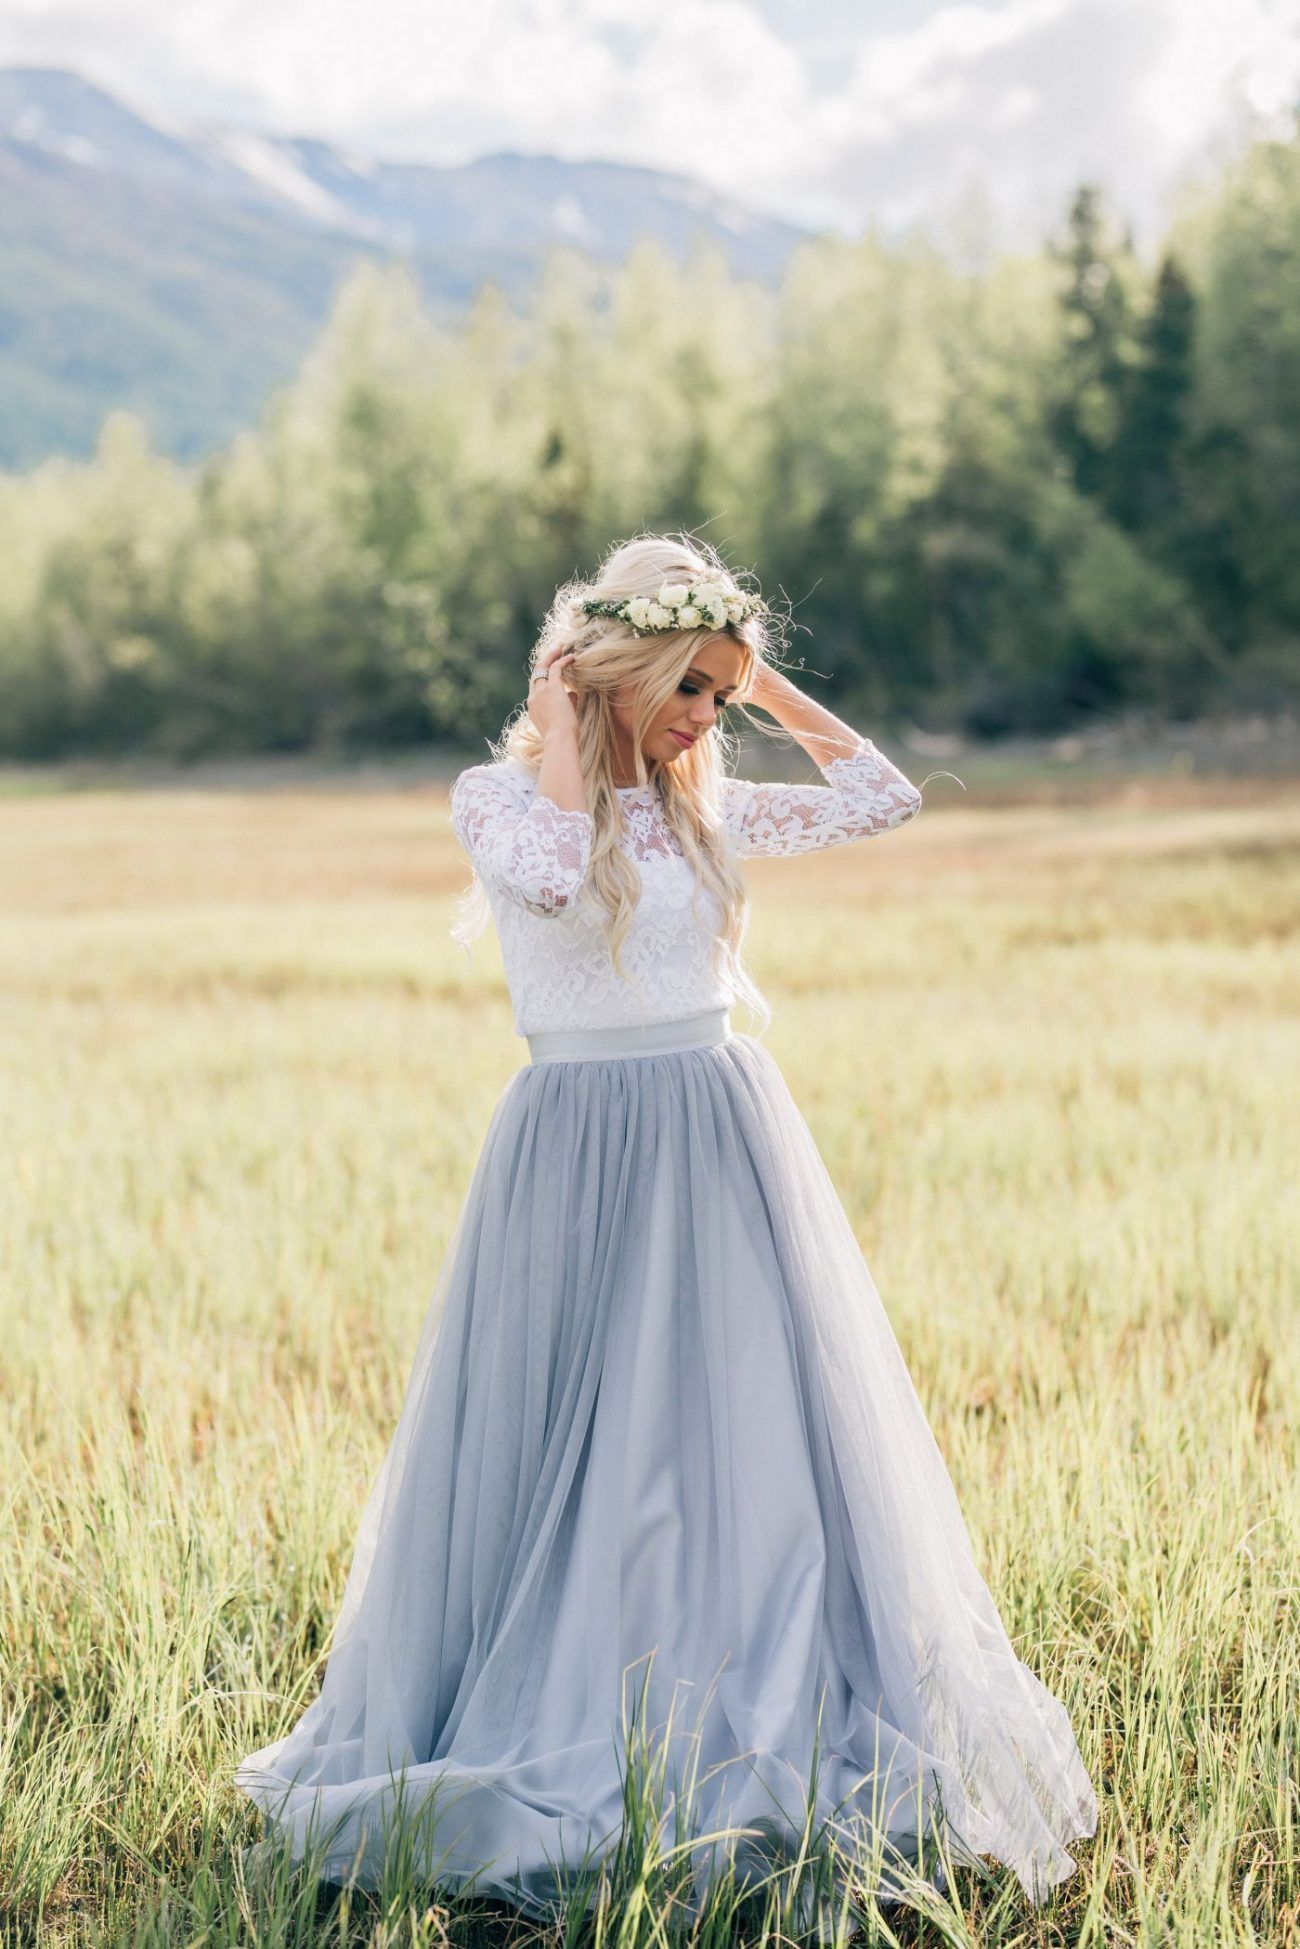 View More: http://kyleeannphotography.pass.us/alaska